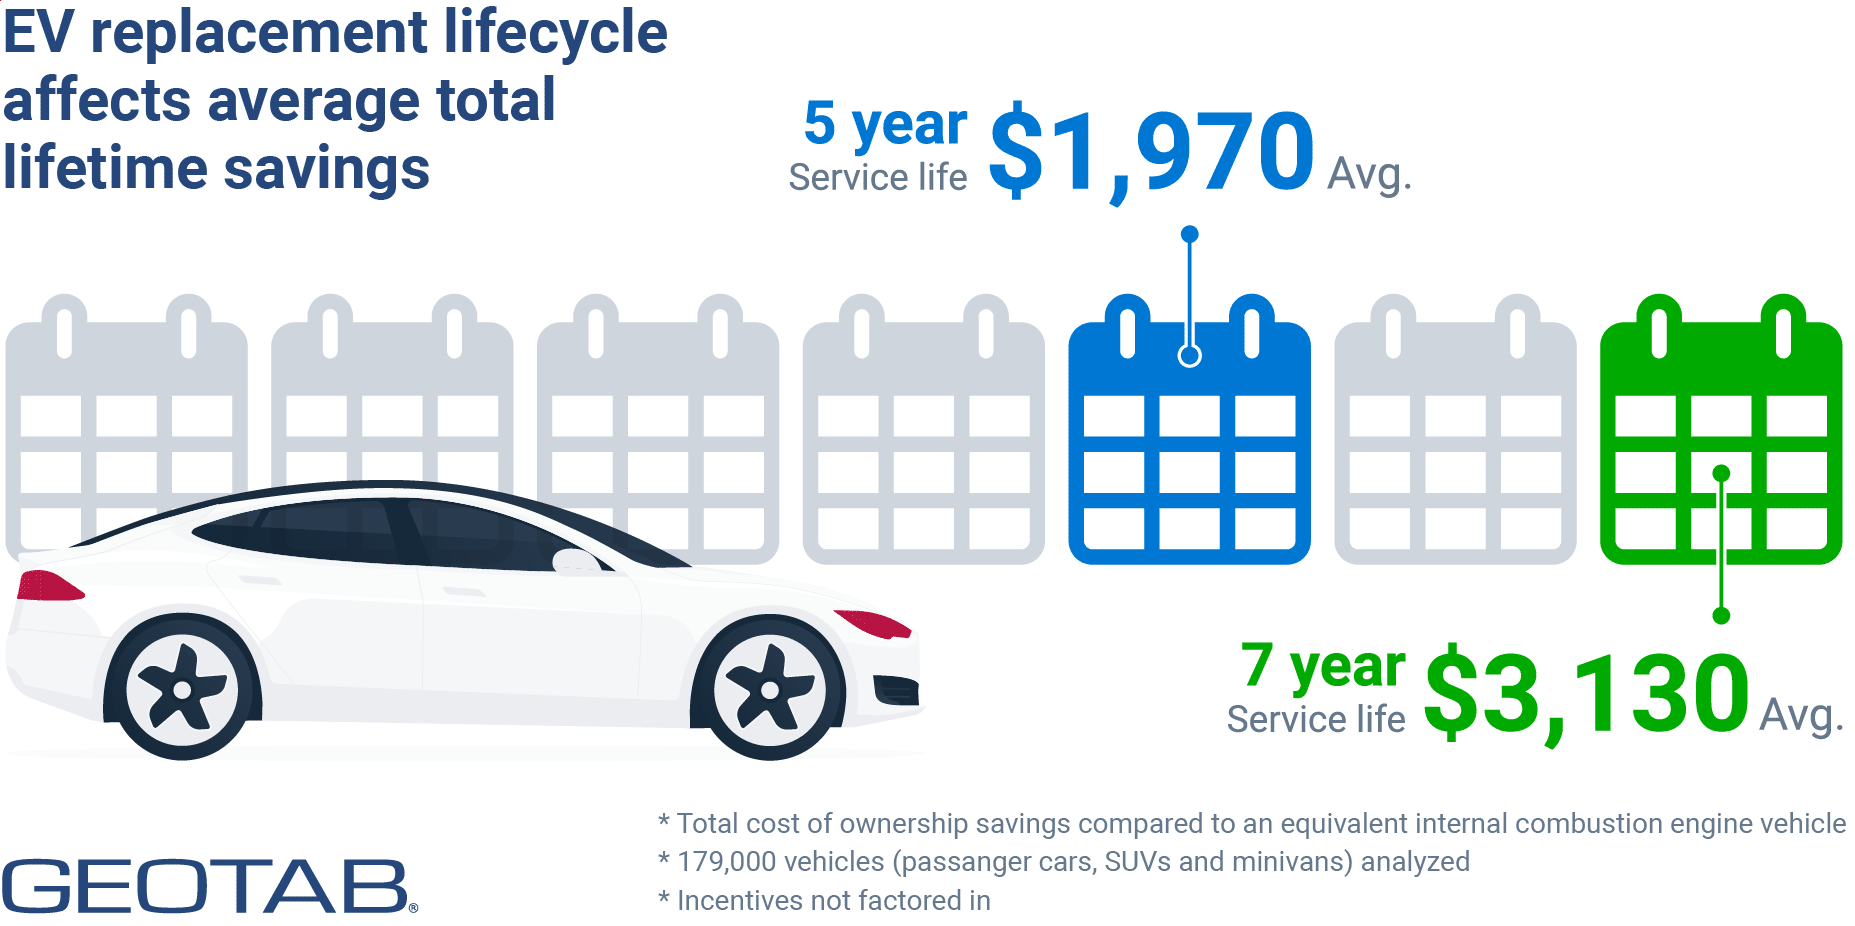 EV replacement lifecycle